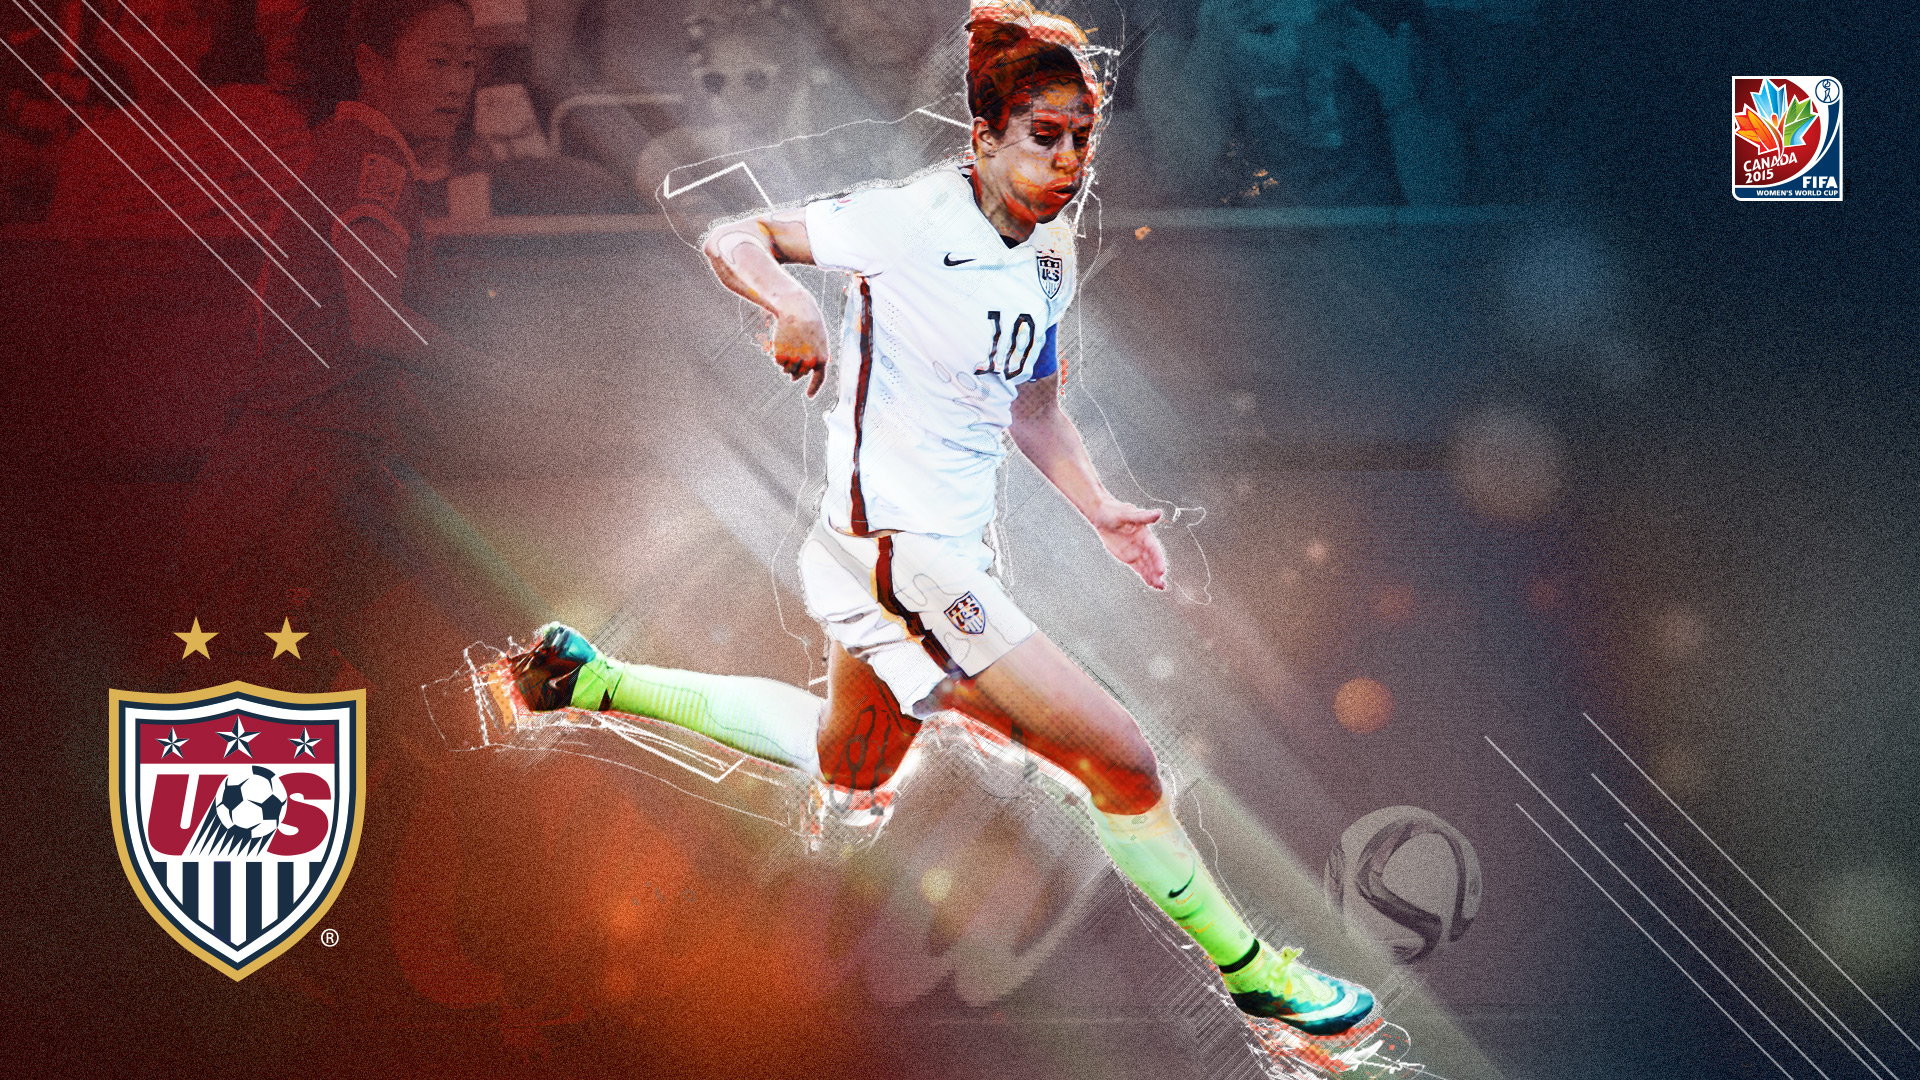 Carli Lloyd puts up a hat trick in the first 16 minutes of the USA's Women's World Cup final against Japan